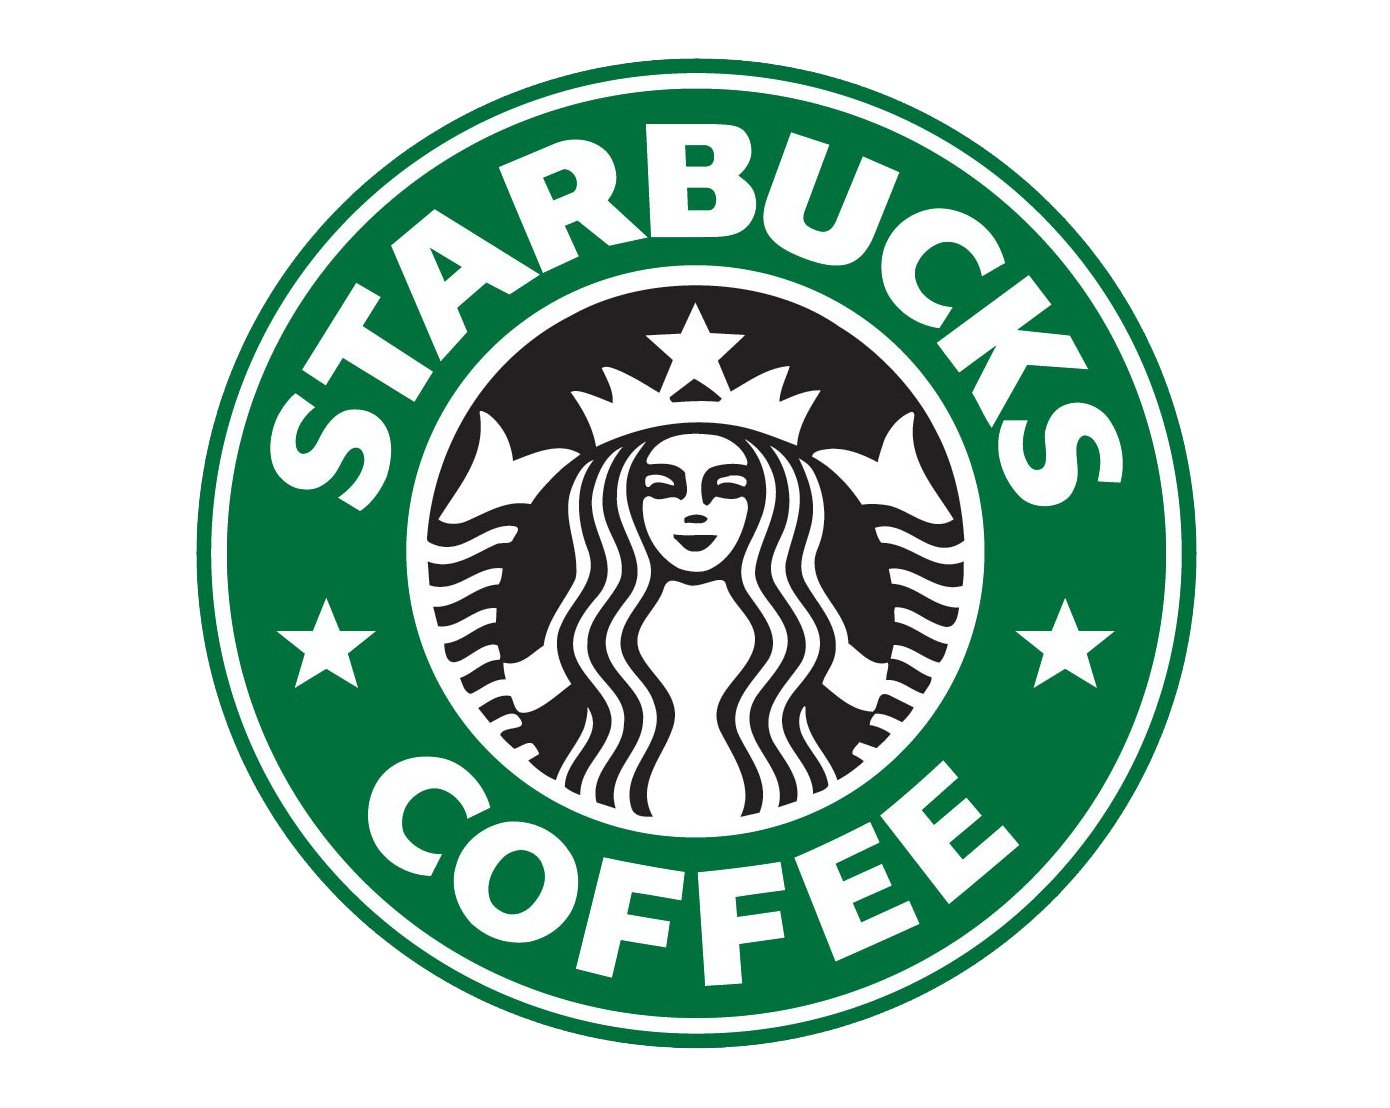 Meaning Starbucks logo and symbol.